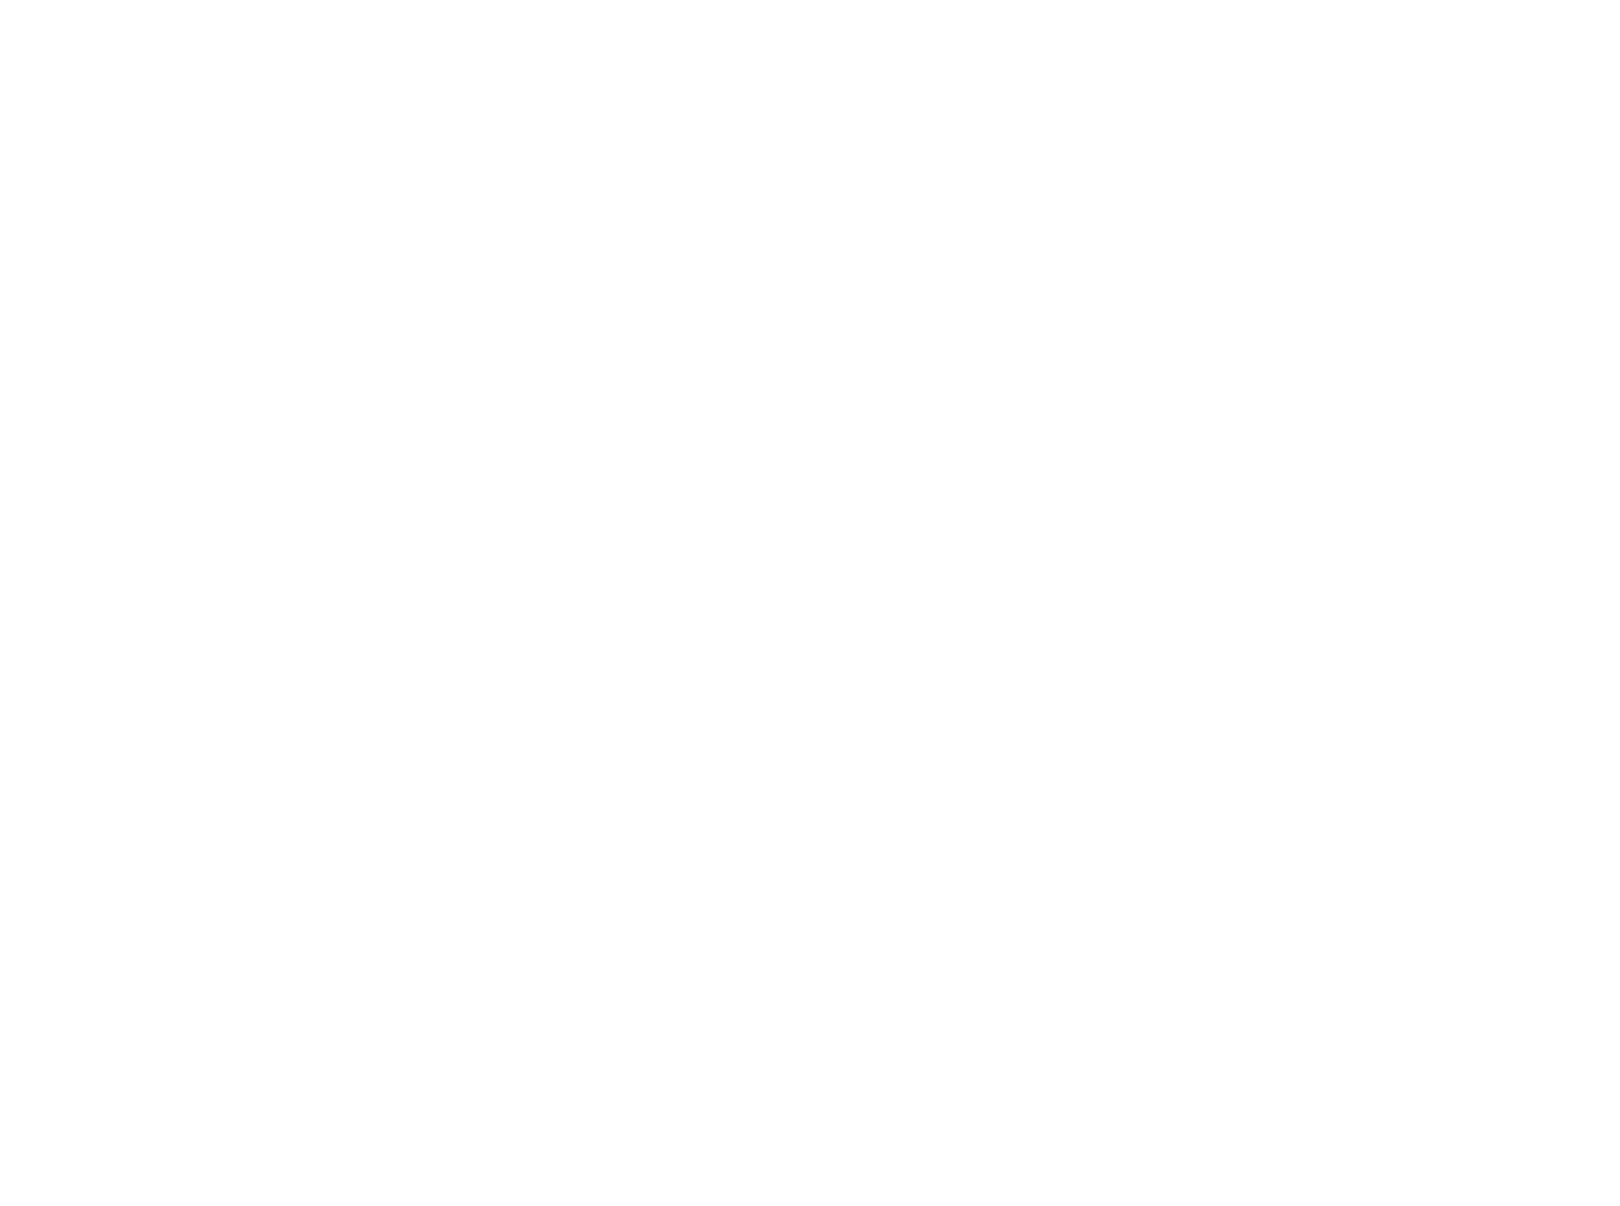 Music Box Direct